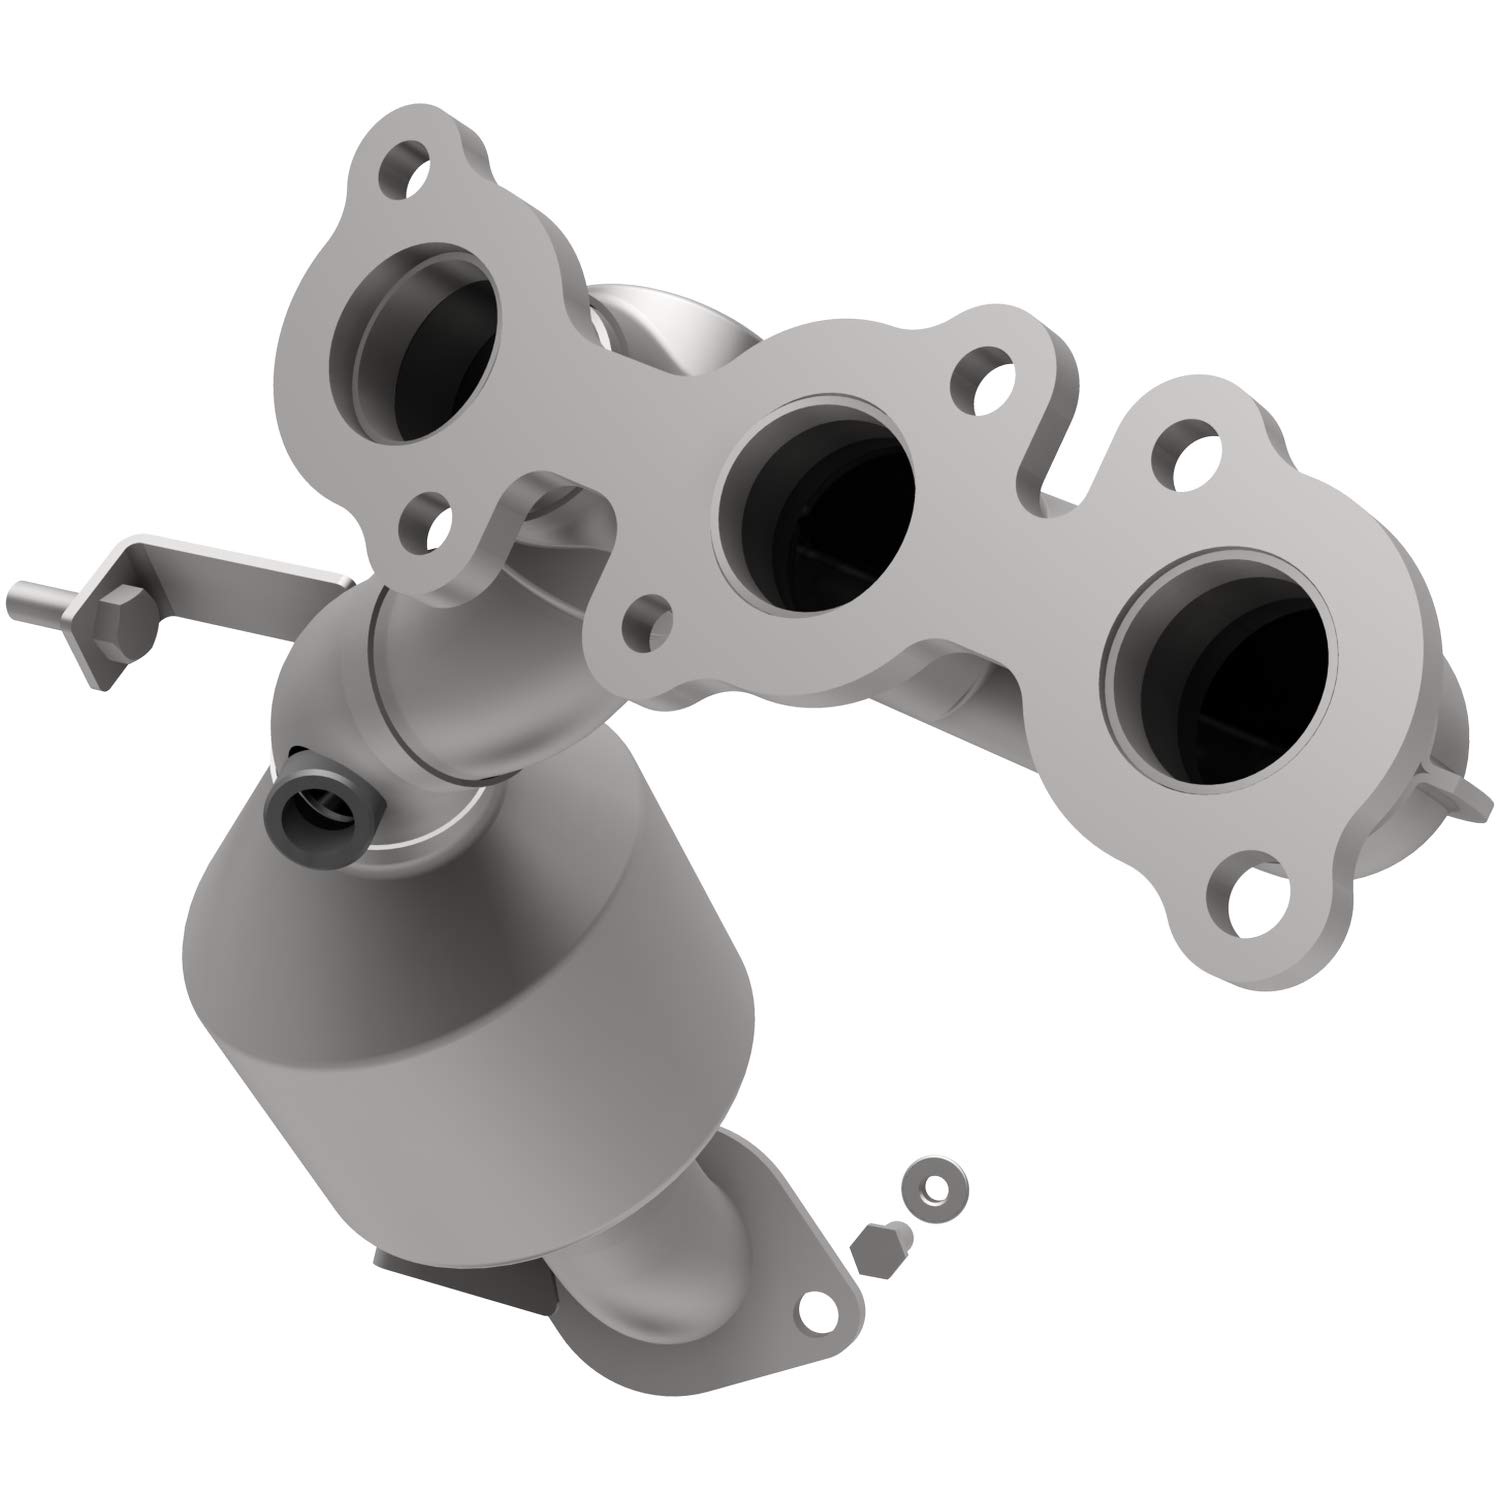 MagnaFlow 50274 Direct Fit Catalytic Converter Non CARB compliant MagnaFlow Exhaust Products